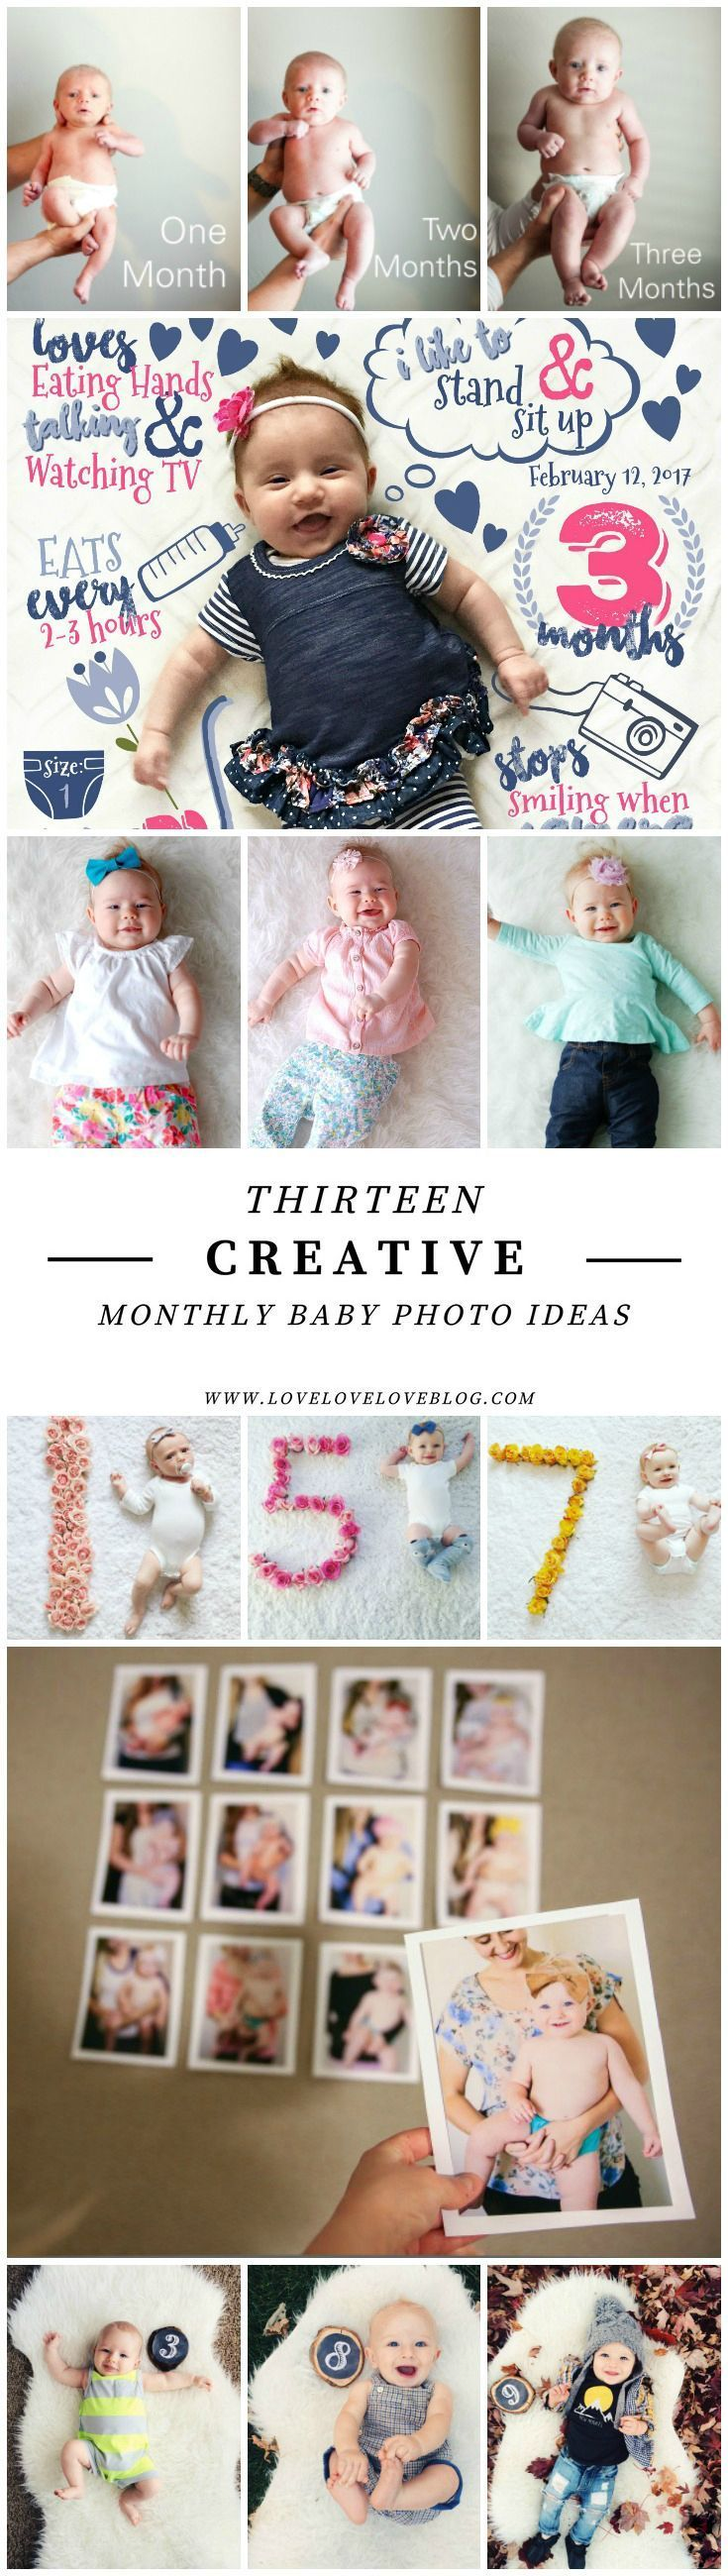 Creative monthly baby photo ideas | DIY Monthly baby photo ideas | Photo ideas for boy | Photo ideas for girl